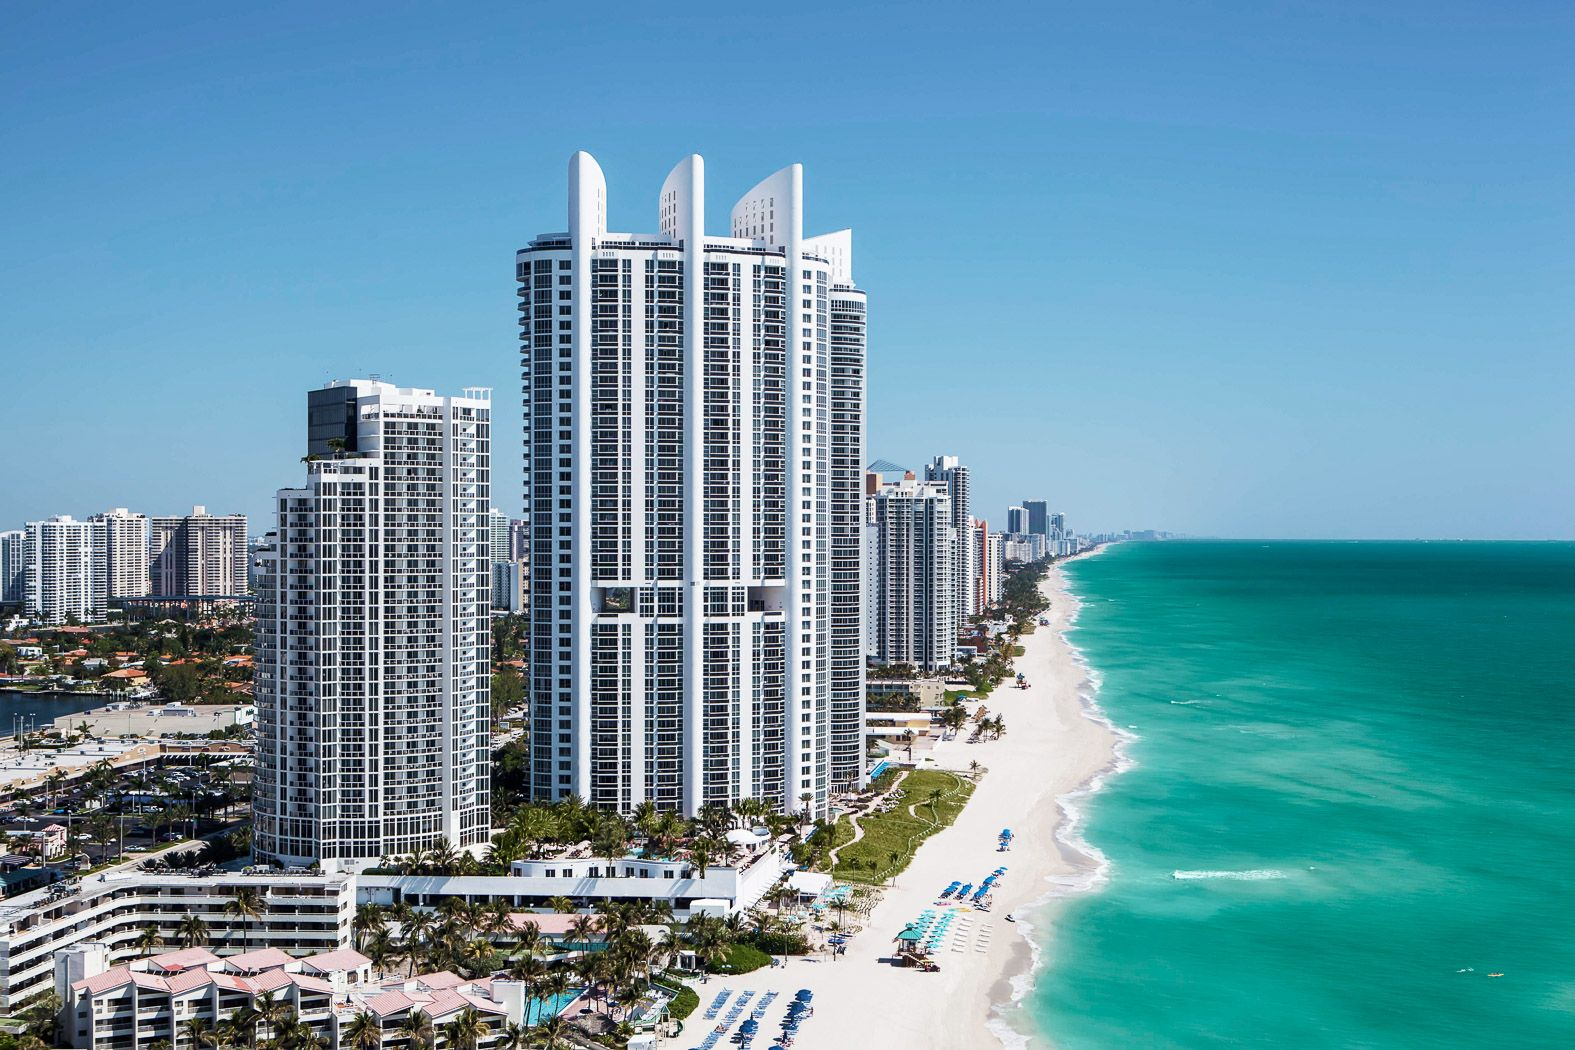 Trump International Beach Resort Miami Is The Best And Most Beautiful Backdrop For Your Sunny Isles Wedding Miami Hotels Sunny Isles Beach Sunny Isles Beach Fl